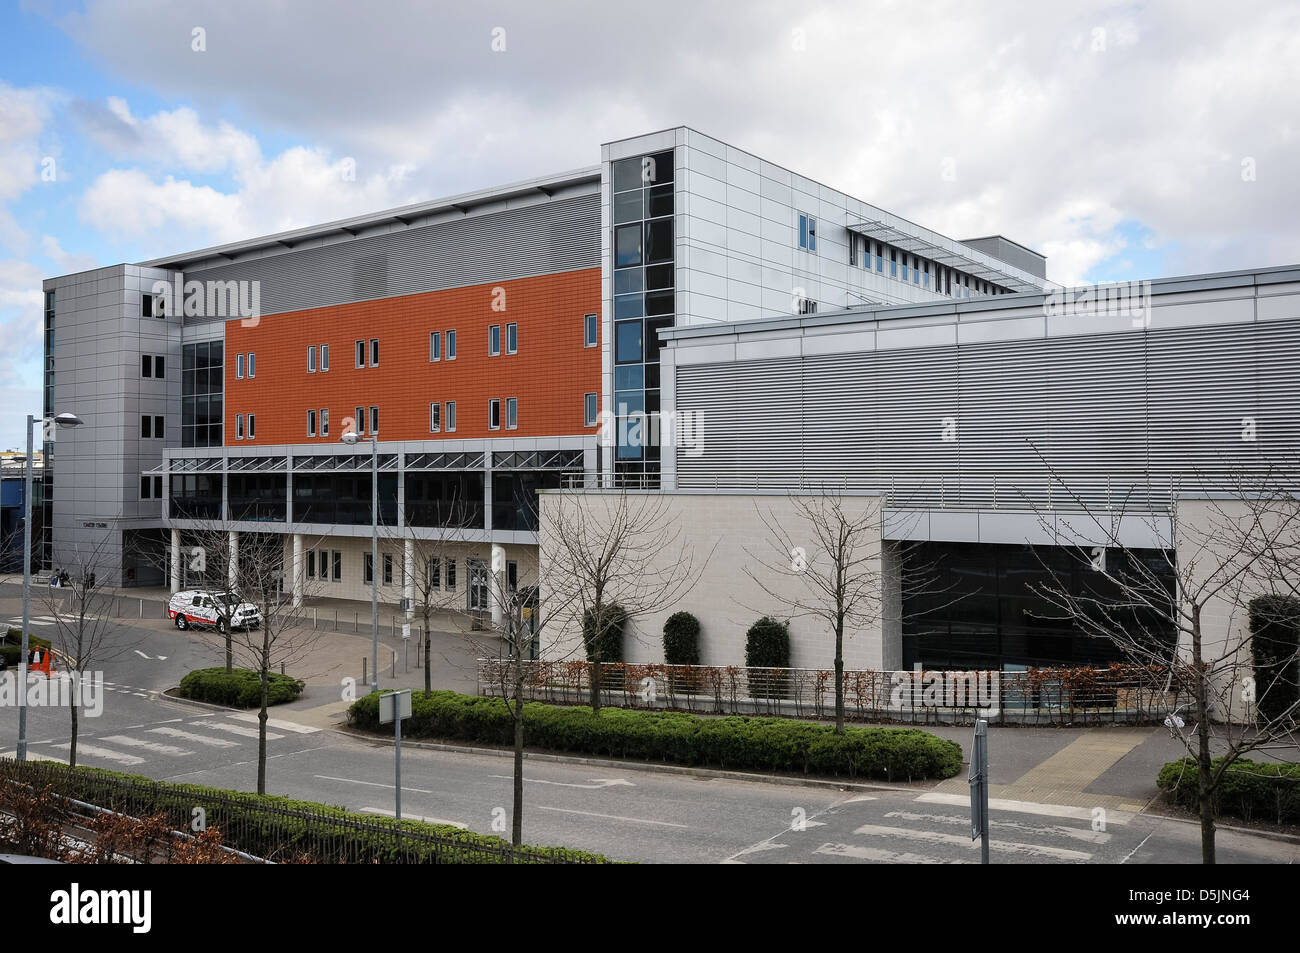 Northern Ireland Cancer Centre - Stock Image